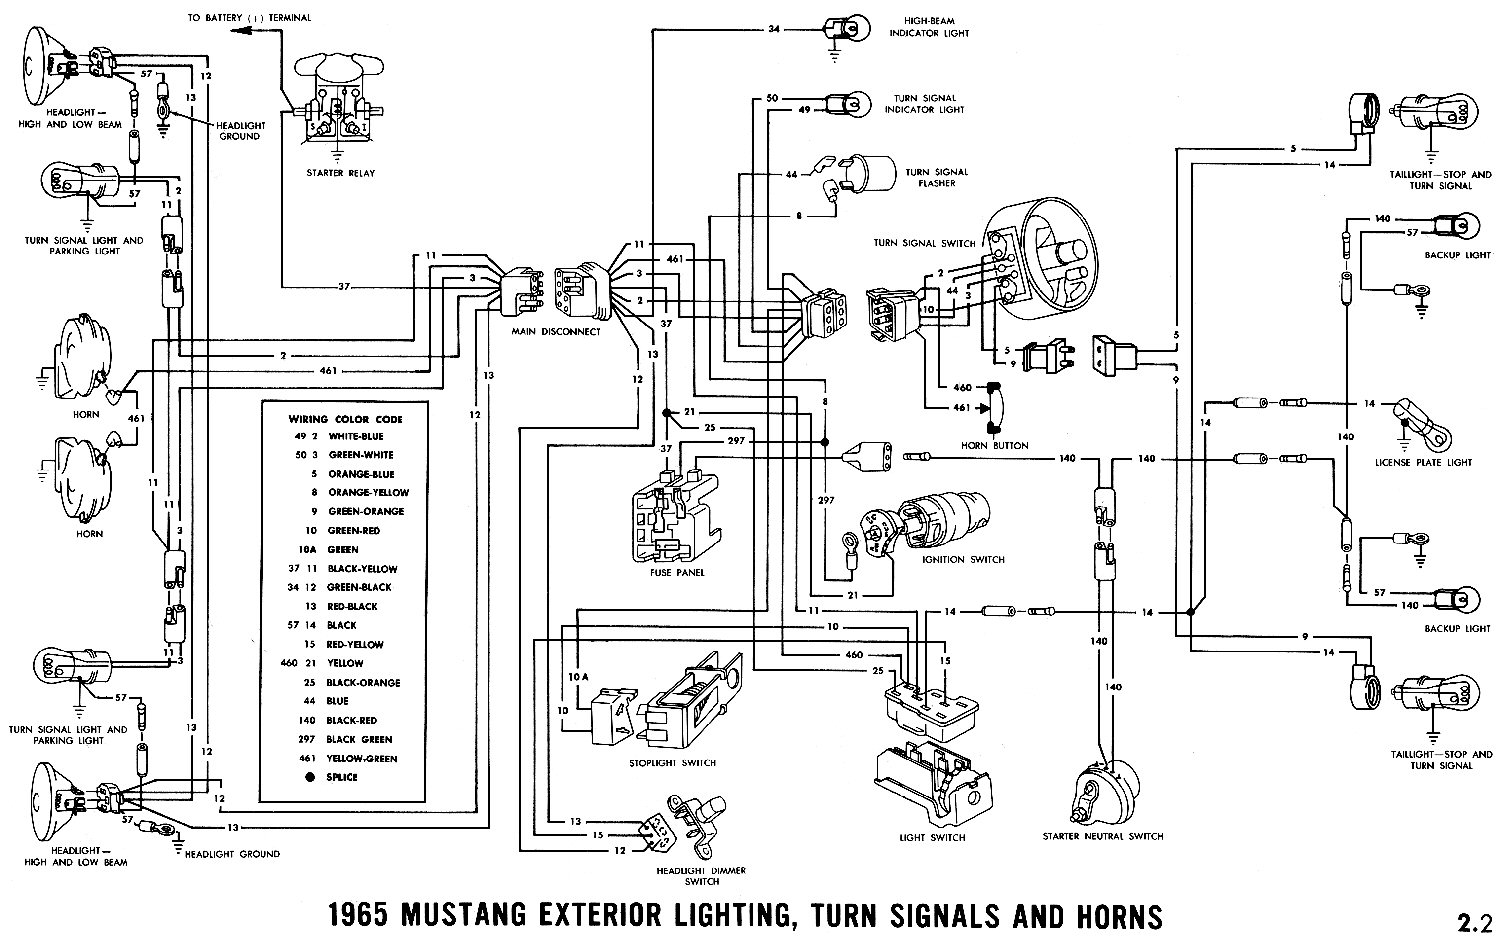 1978 Mustang Wiring Diagram